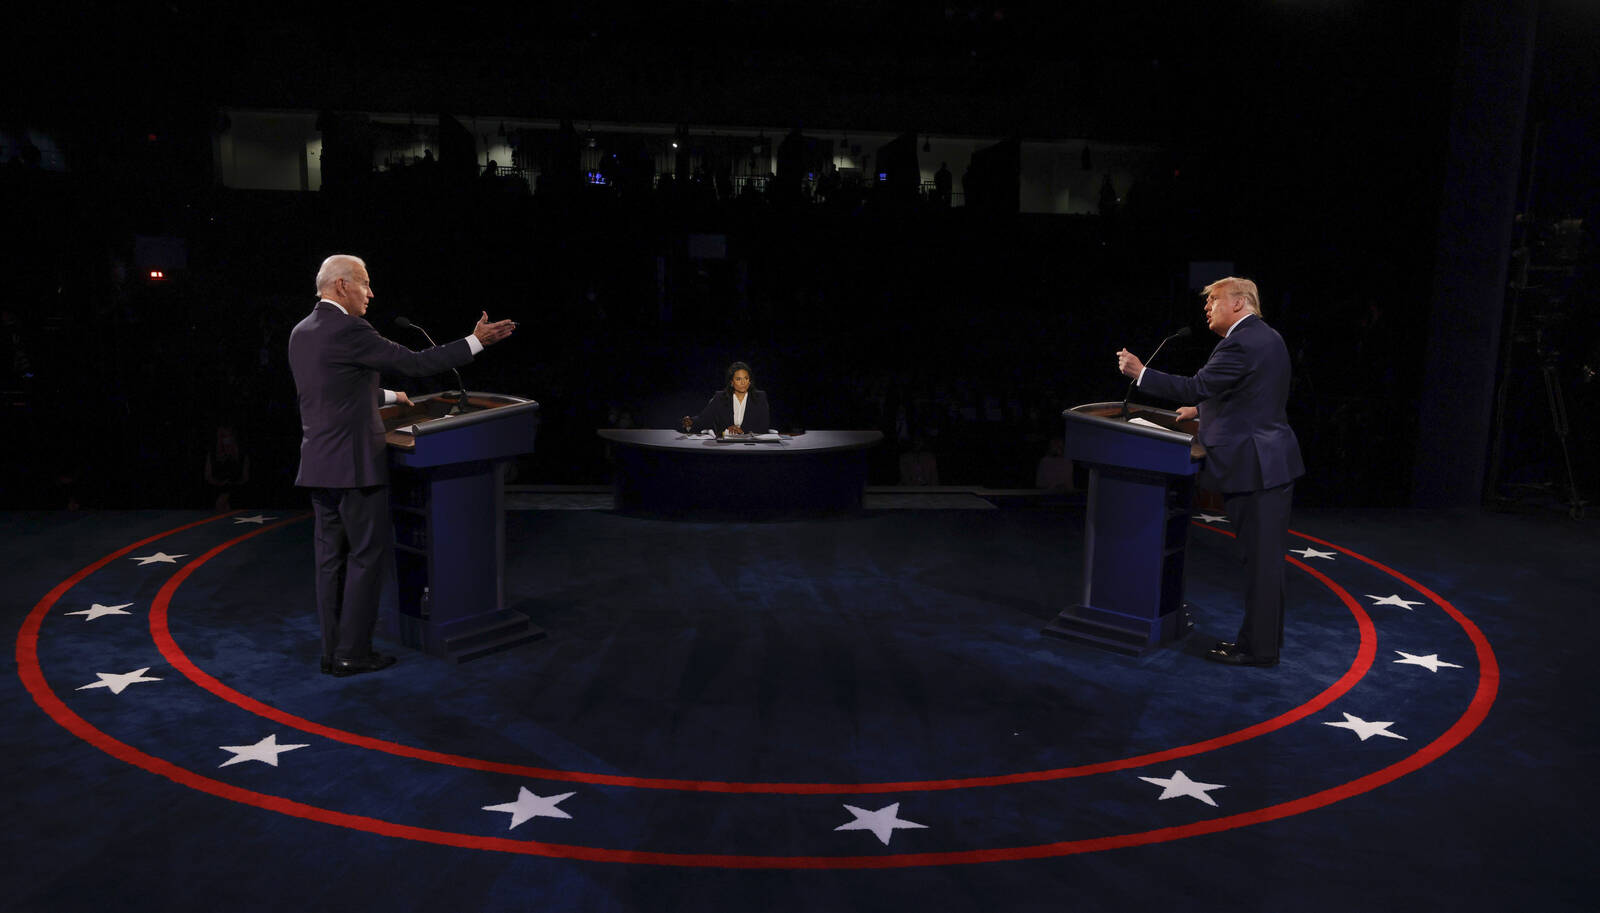 U.S. President Donald Trump and Democratic presidential nominee Joe Biden participate in the final presidential debate at Belmont University on Oct. 22, 2020 in Nashville, Tennessee. Credit: Jim Bourg-Pool/Getty Images